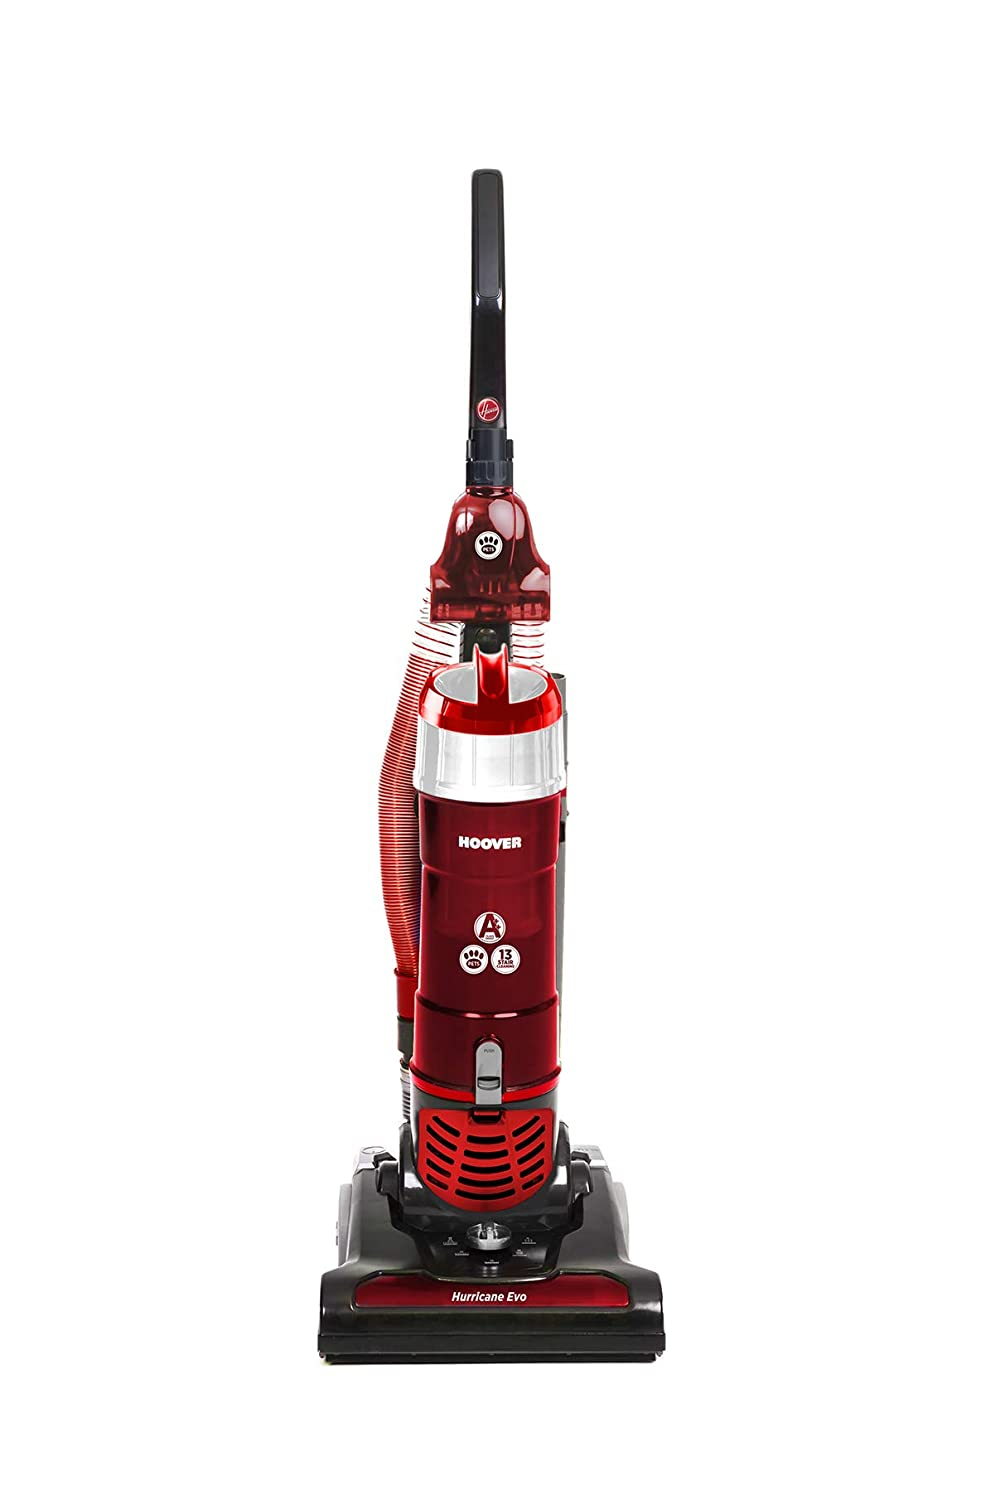 Hoover Hurricane Evo TH31HO01 Bagless Pets Upright Vacuum Cleaner, Black & Red, A++ Energy Rated [Energy Class A++] TH31 HO01